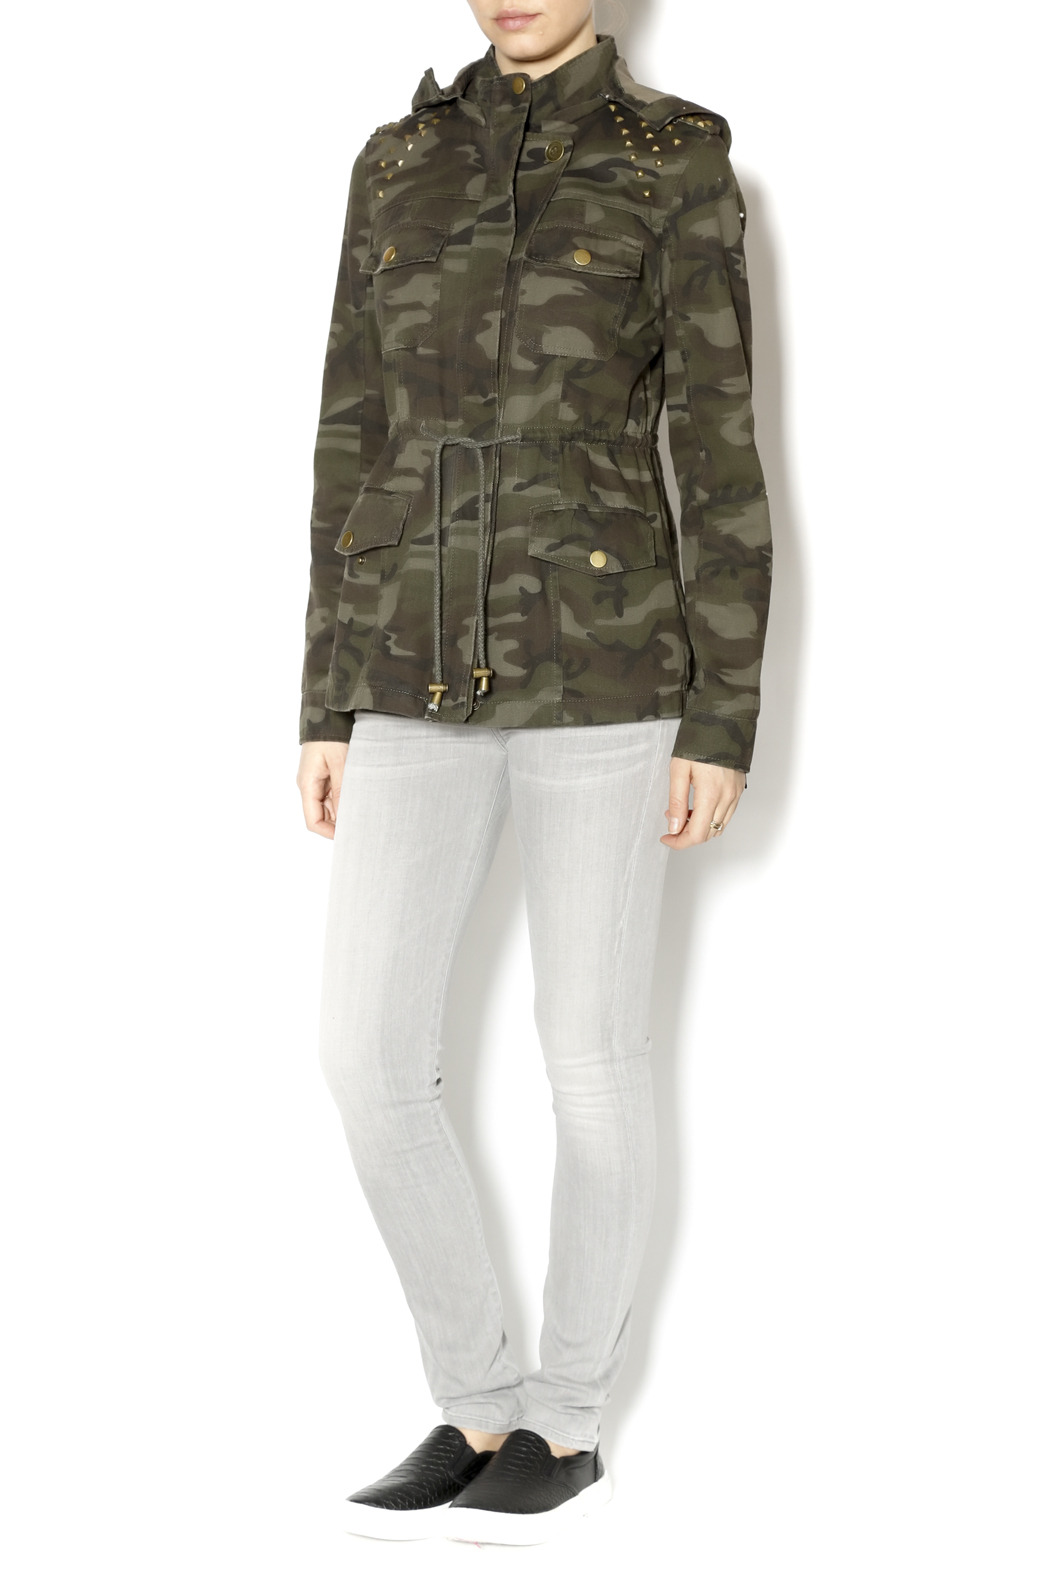 Zenana Outfitters Camo Jacket w/Stud from New York City by Fly Dove NYC u2014 Shoptiques